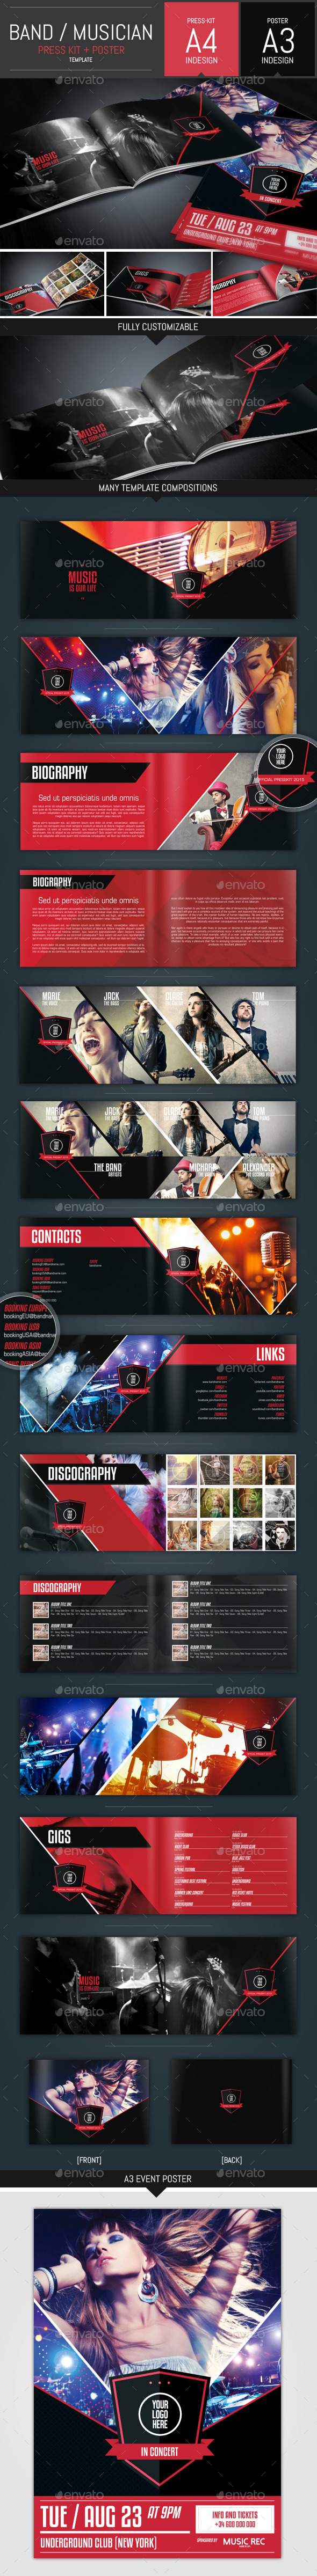 GraphicRiver Music Band Pack Presskit & Poster Template 10457289